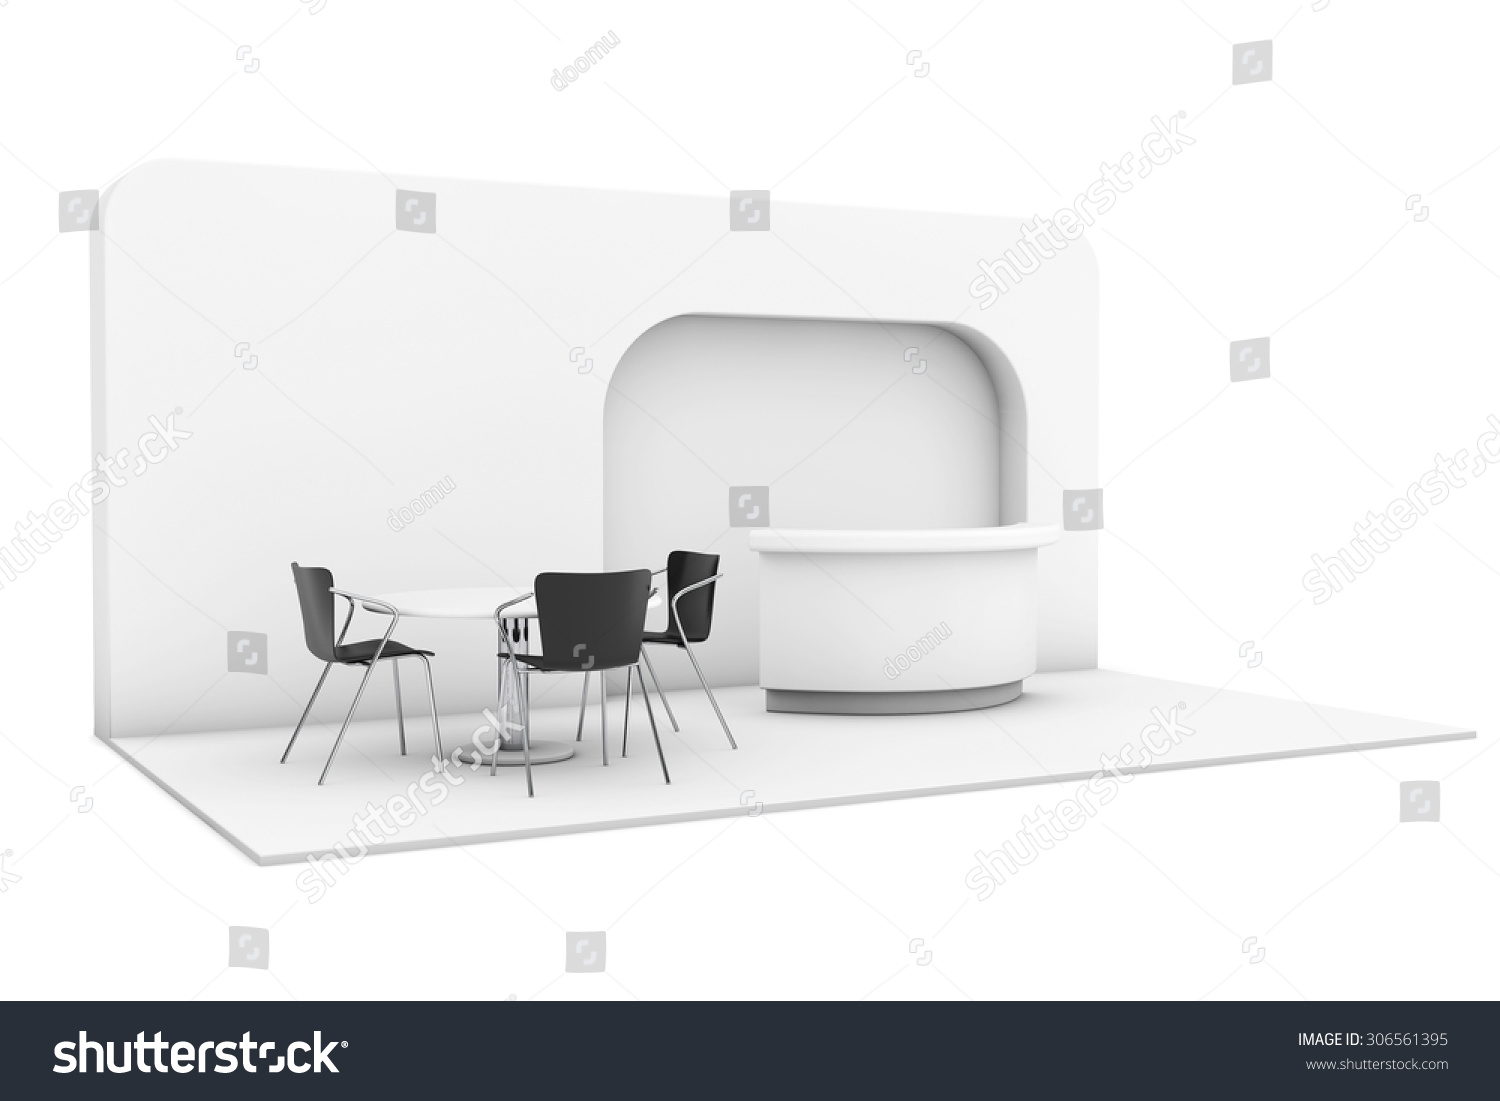 Exhibition Stall Sketch : Trade commercial exhibition stand on white stock illustration